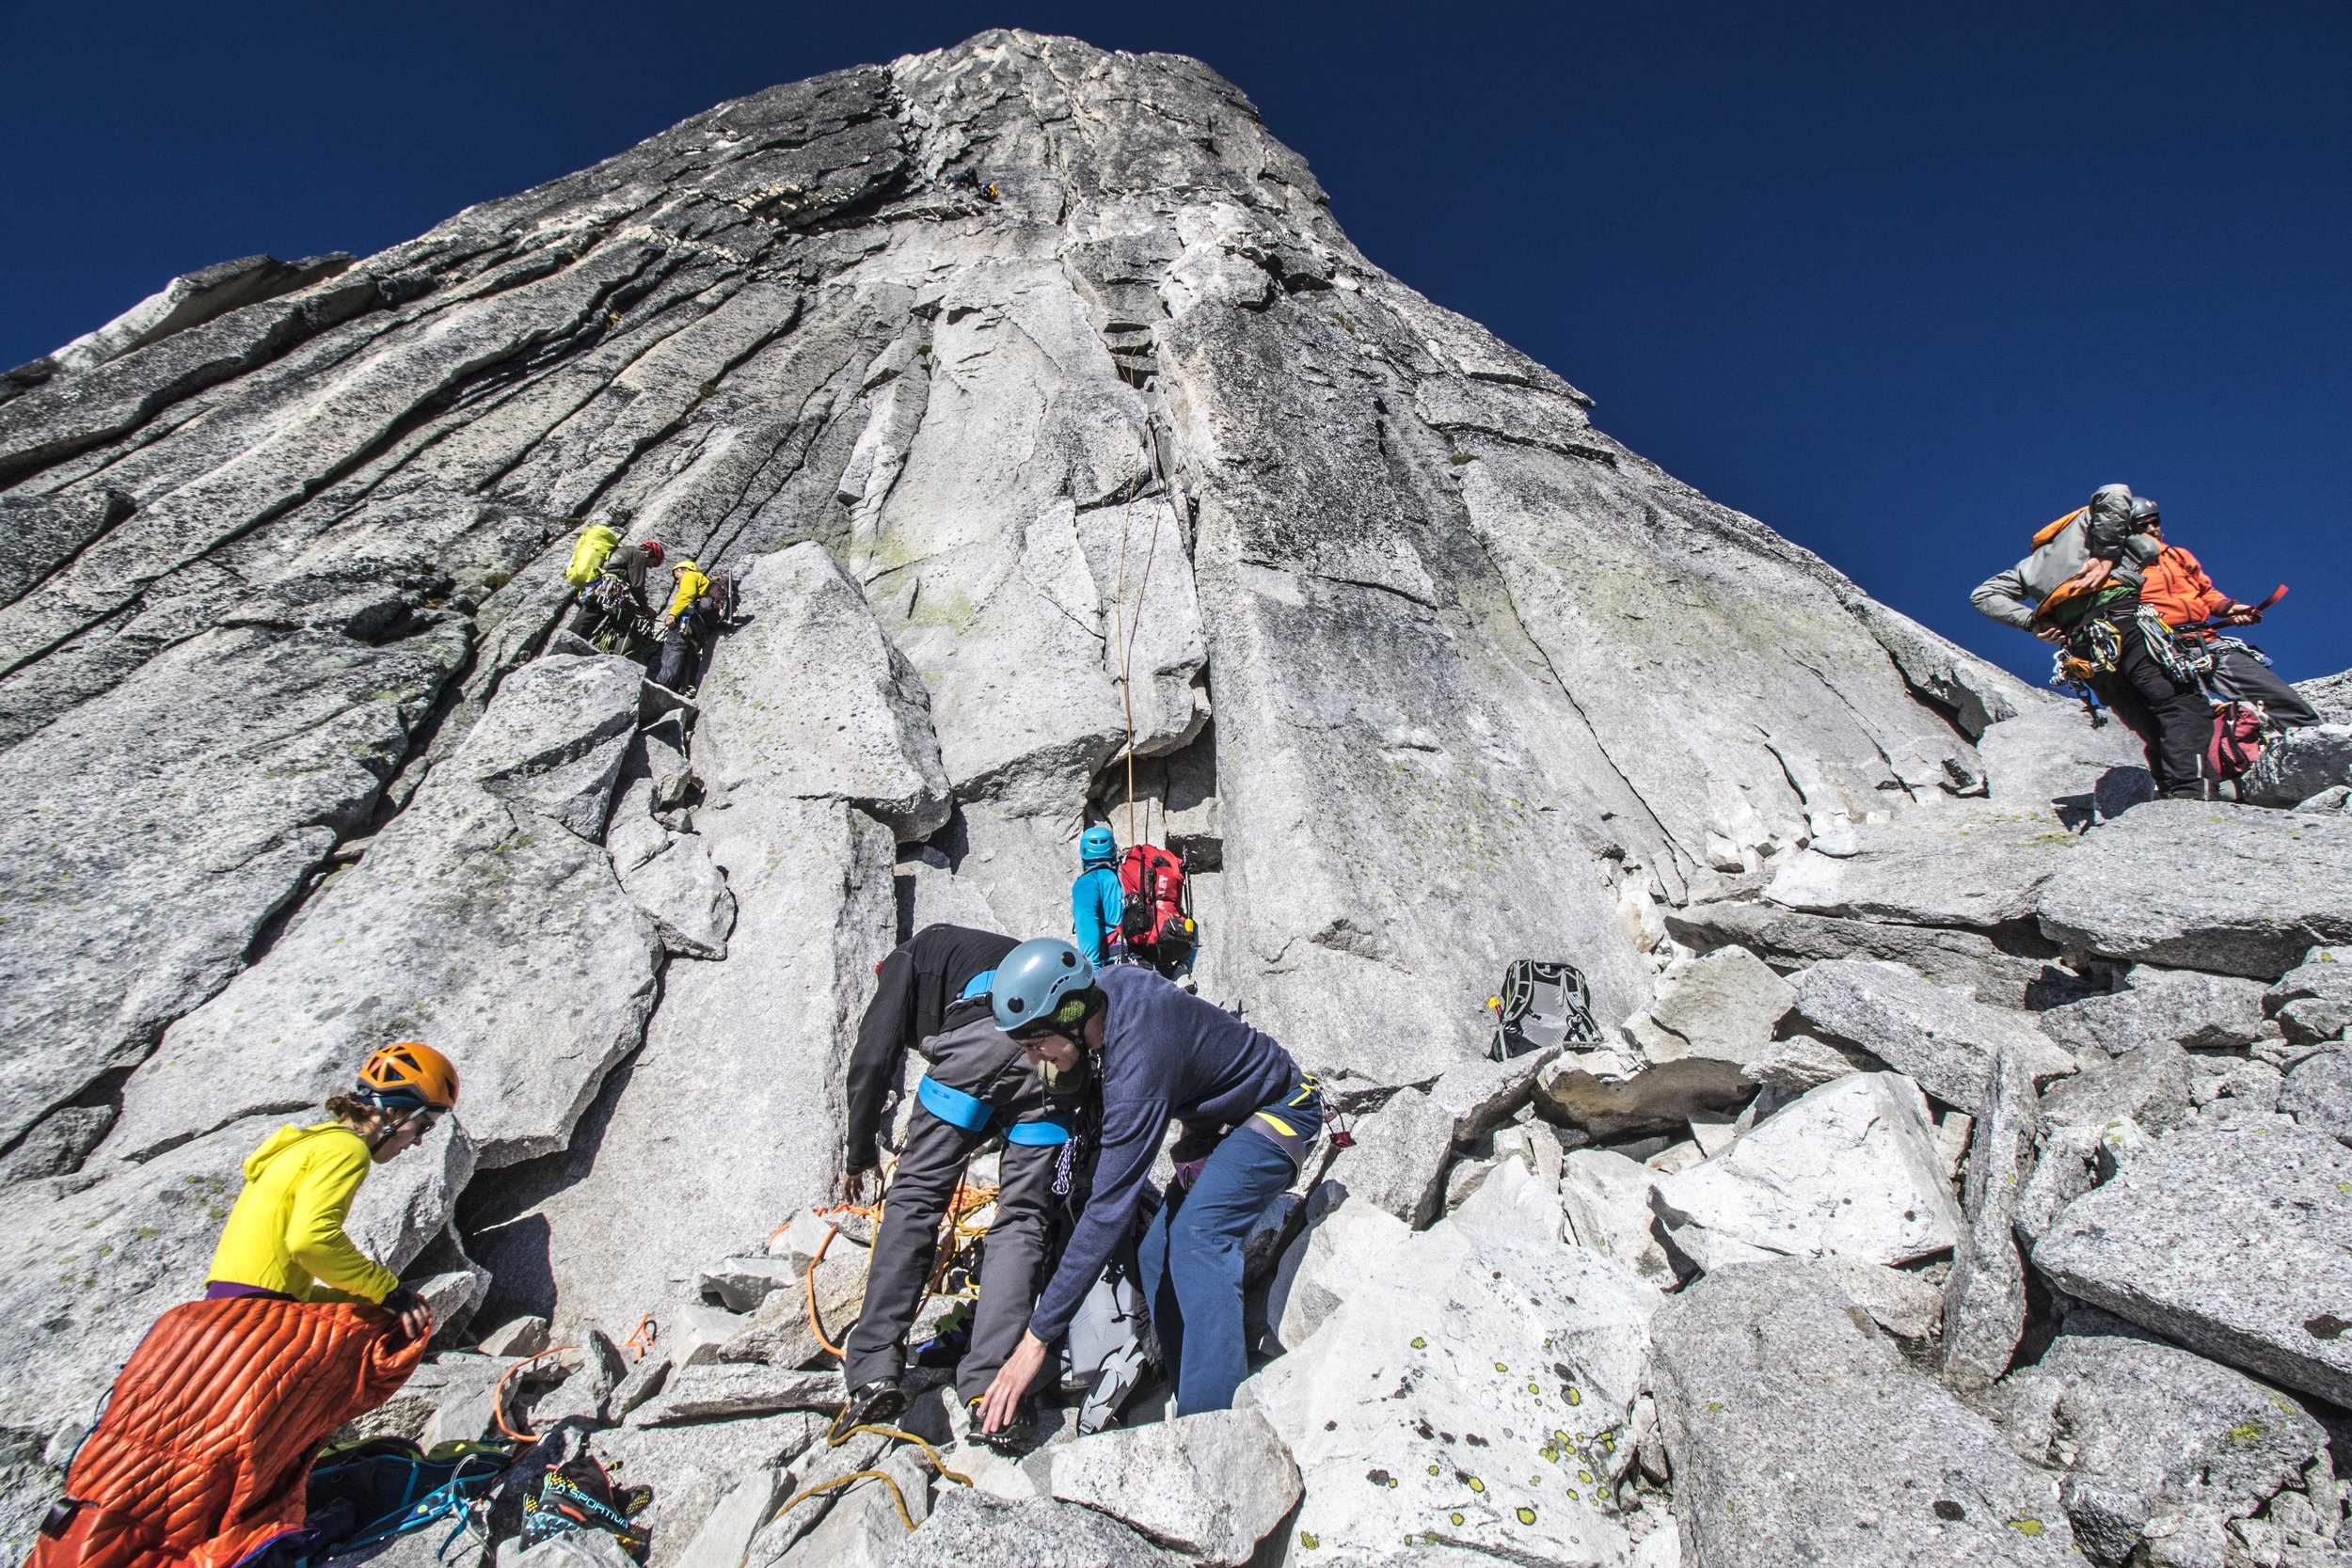 Climbers at the rope-up ledge on the Northeast Ridge of Bugaboo Spire. It's a party!